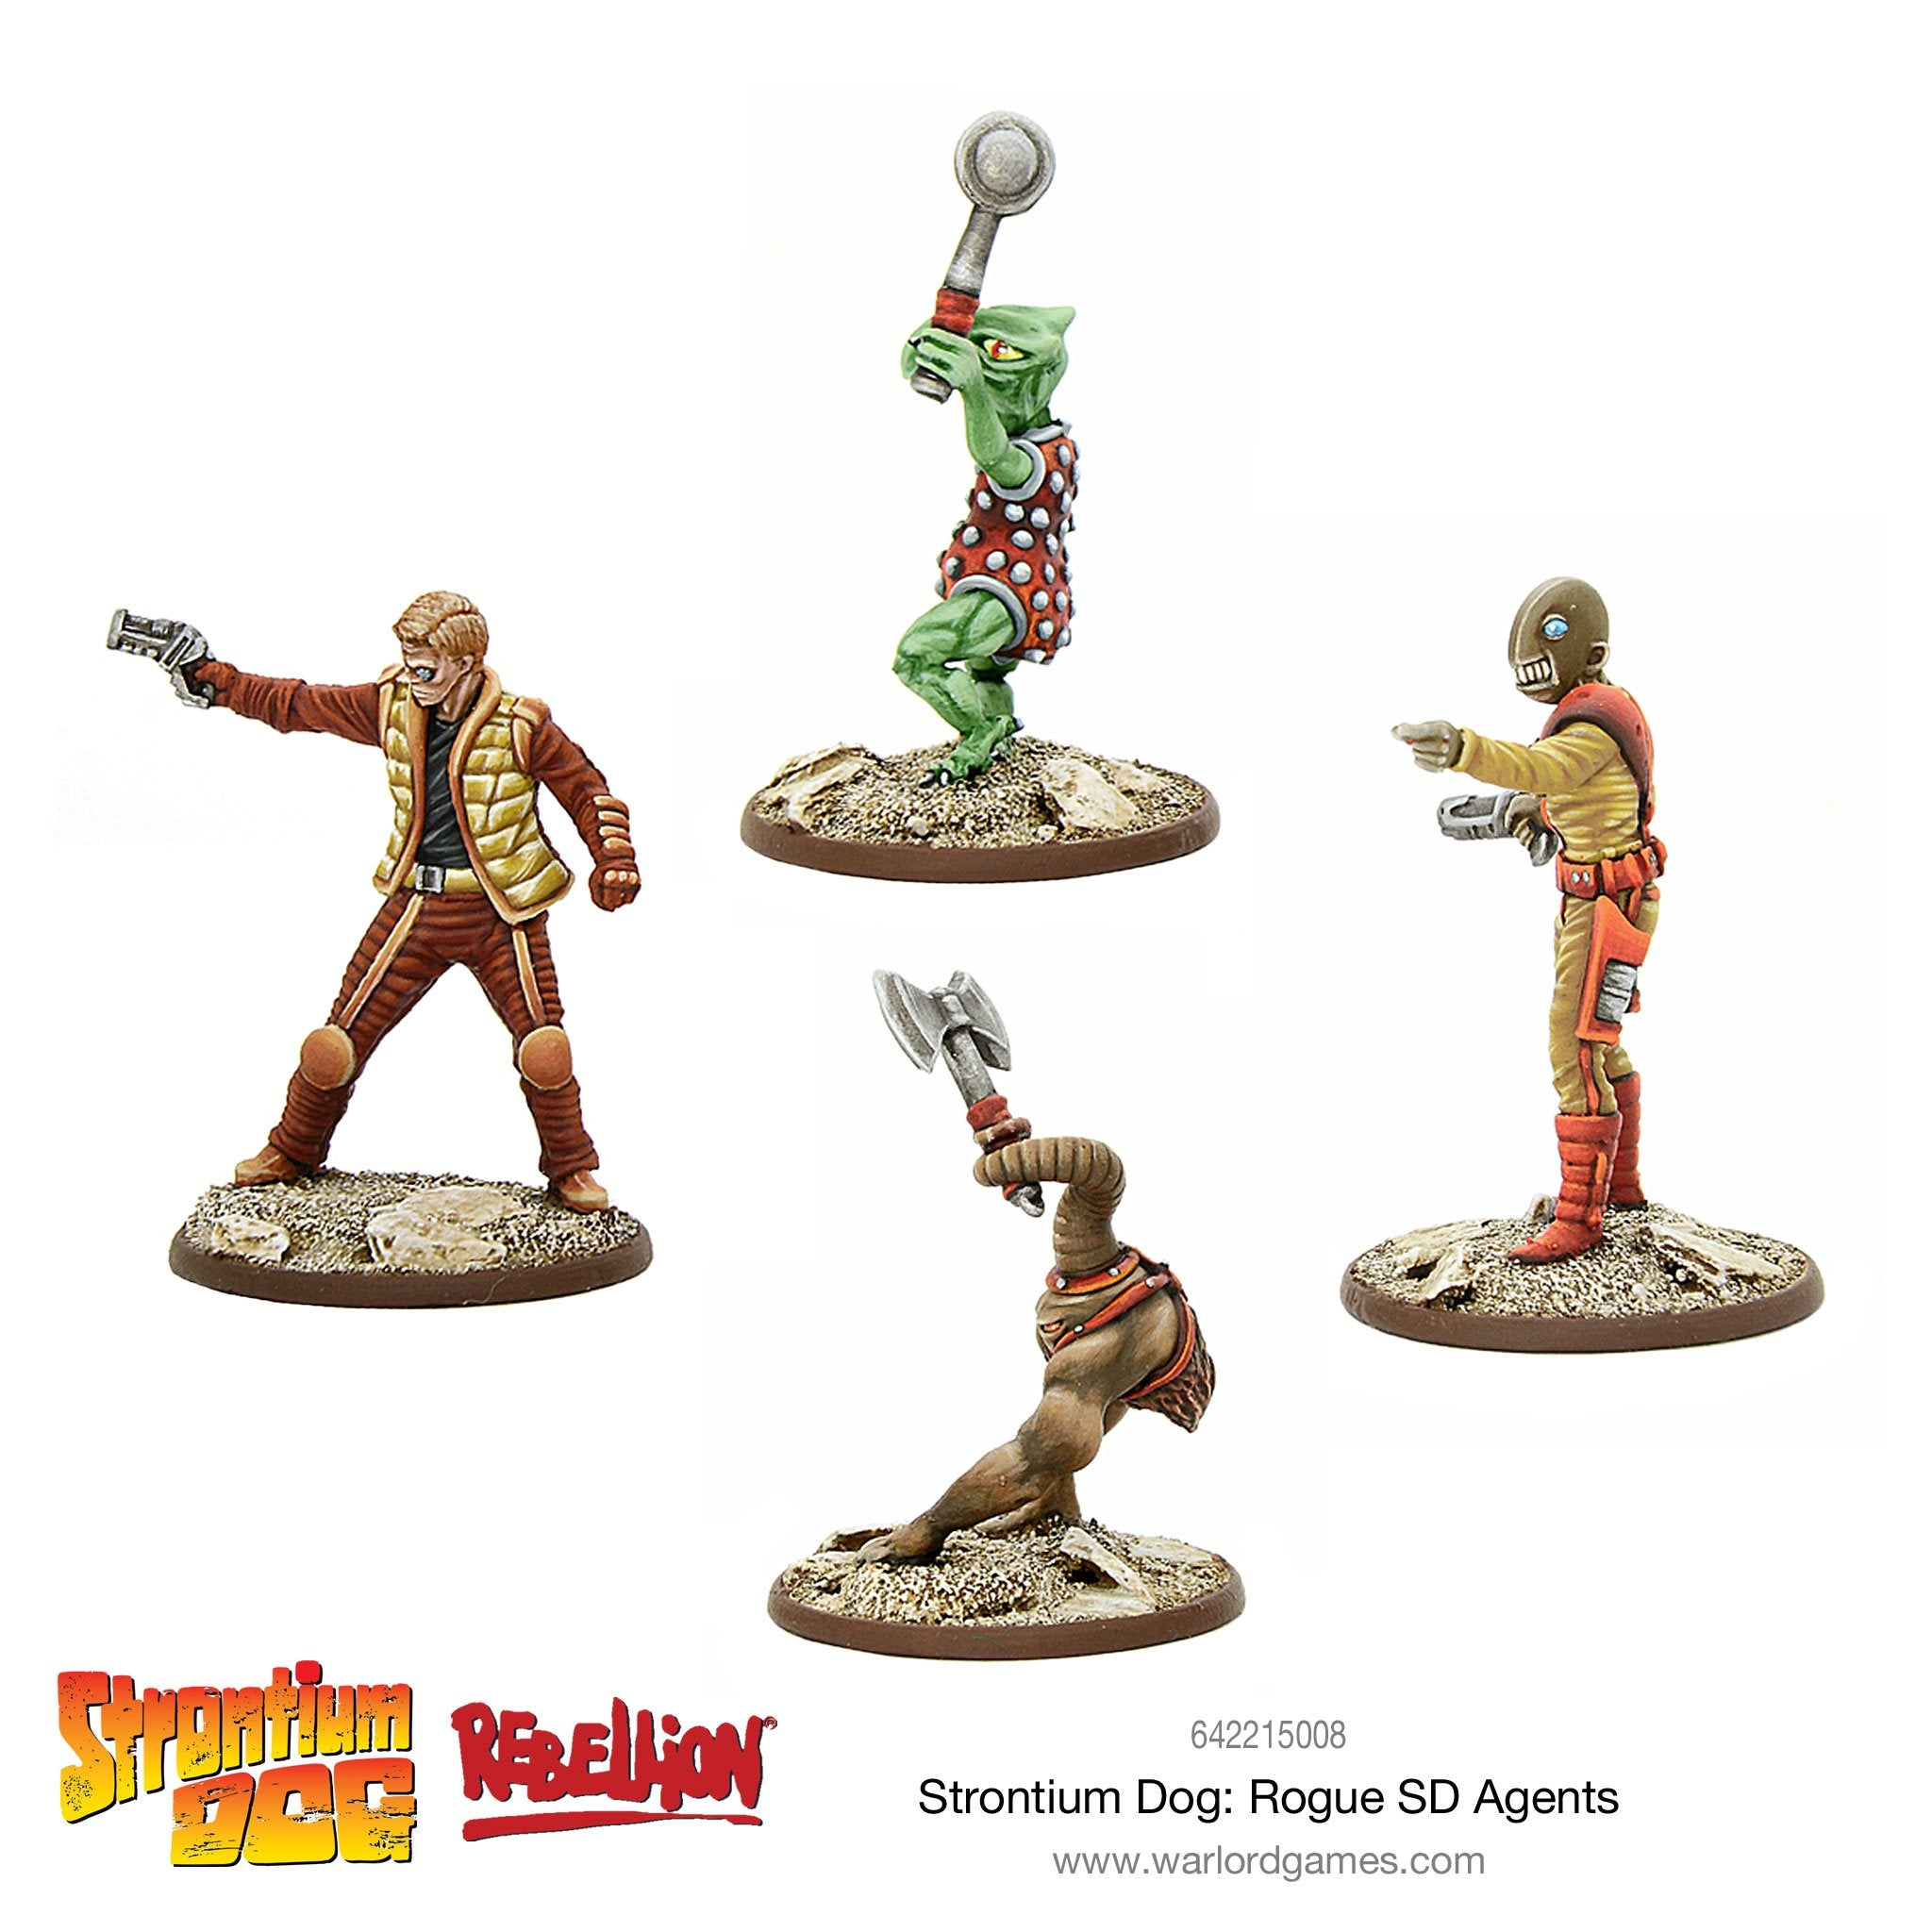 Strontium Dog: Rogue SD Agents